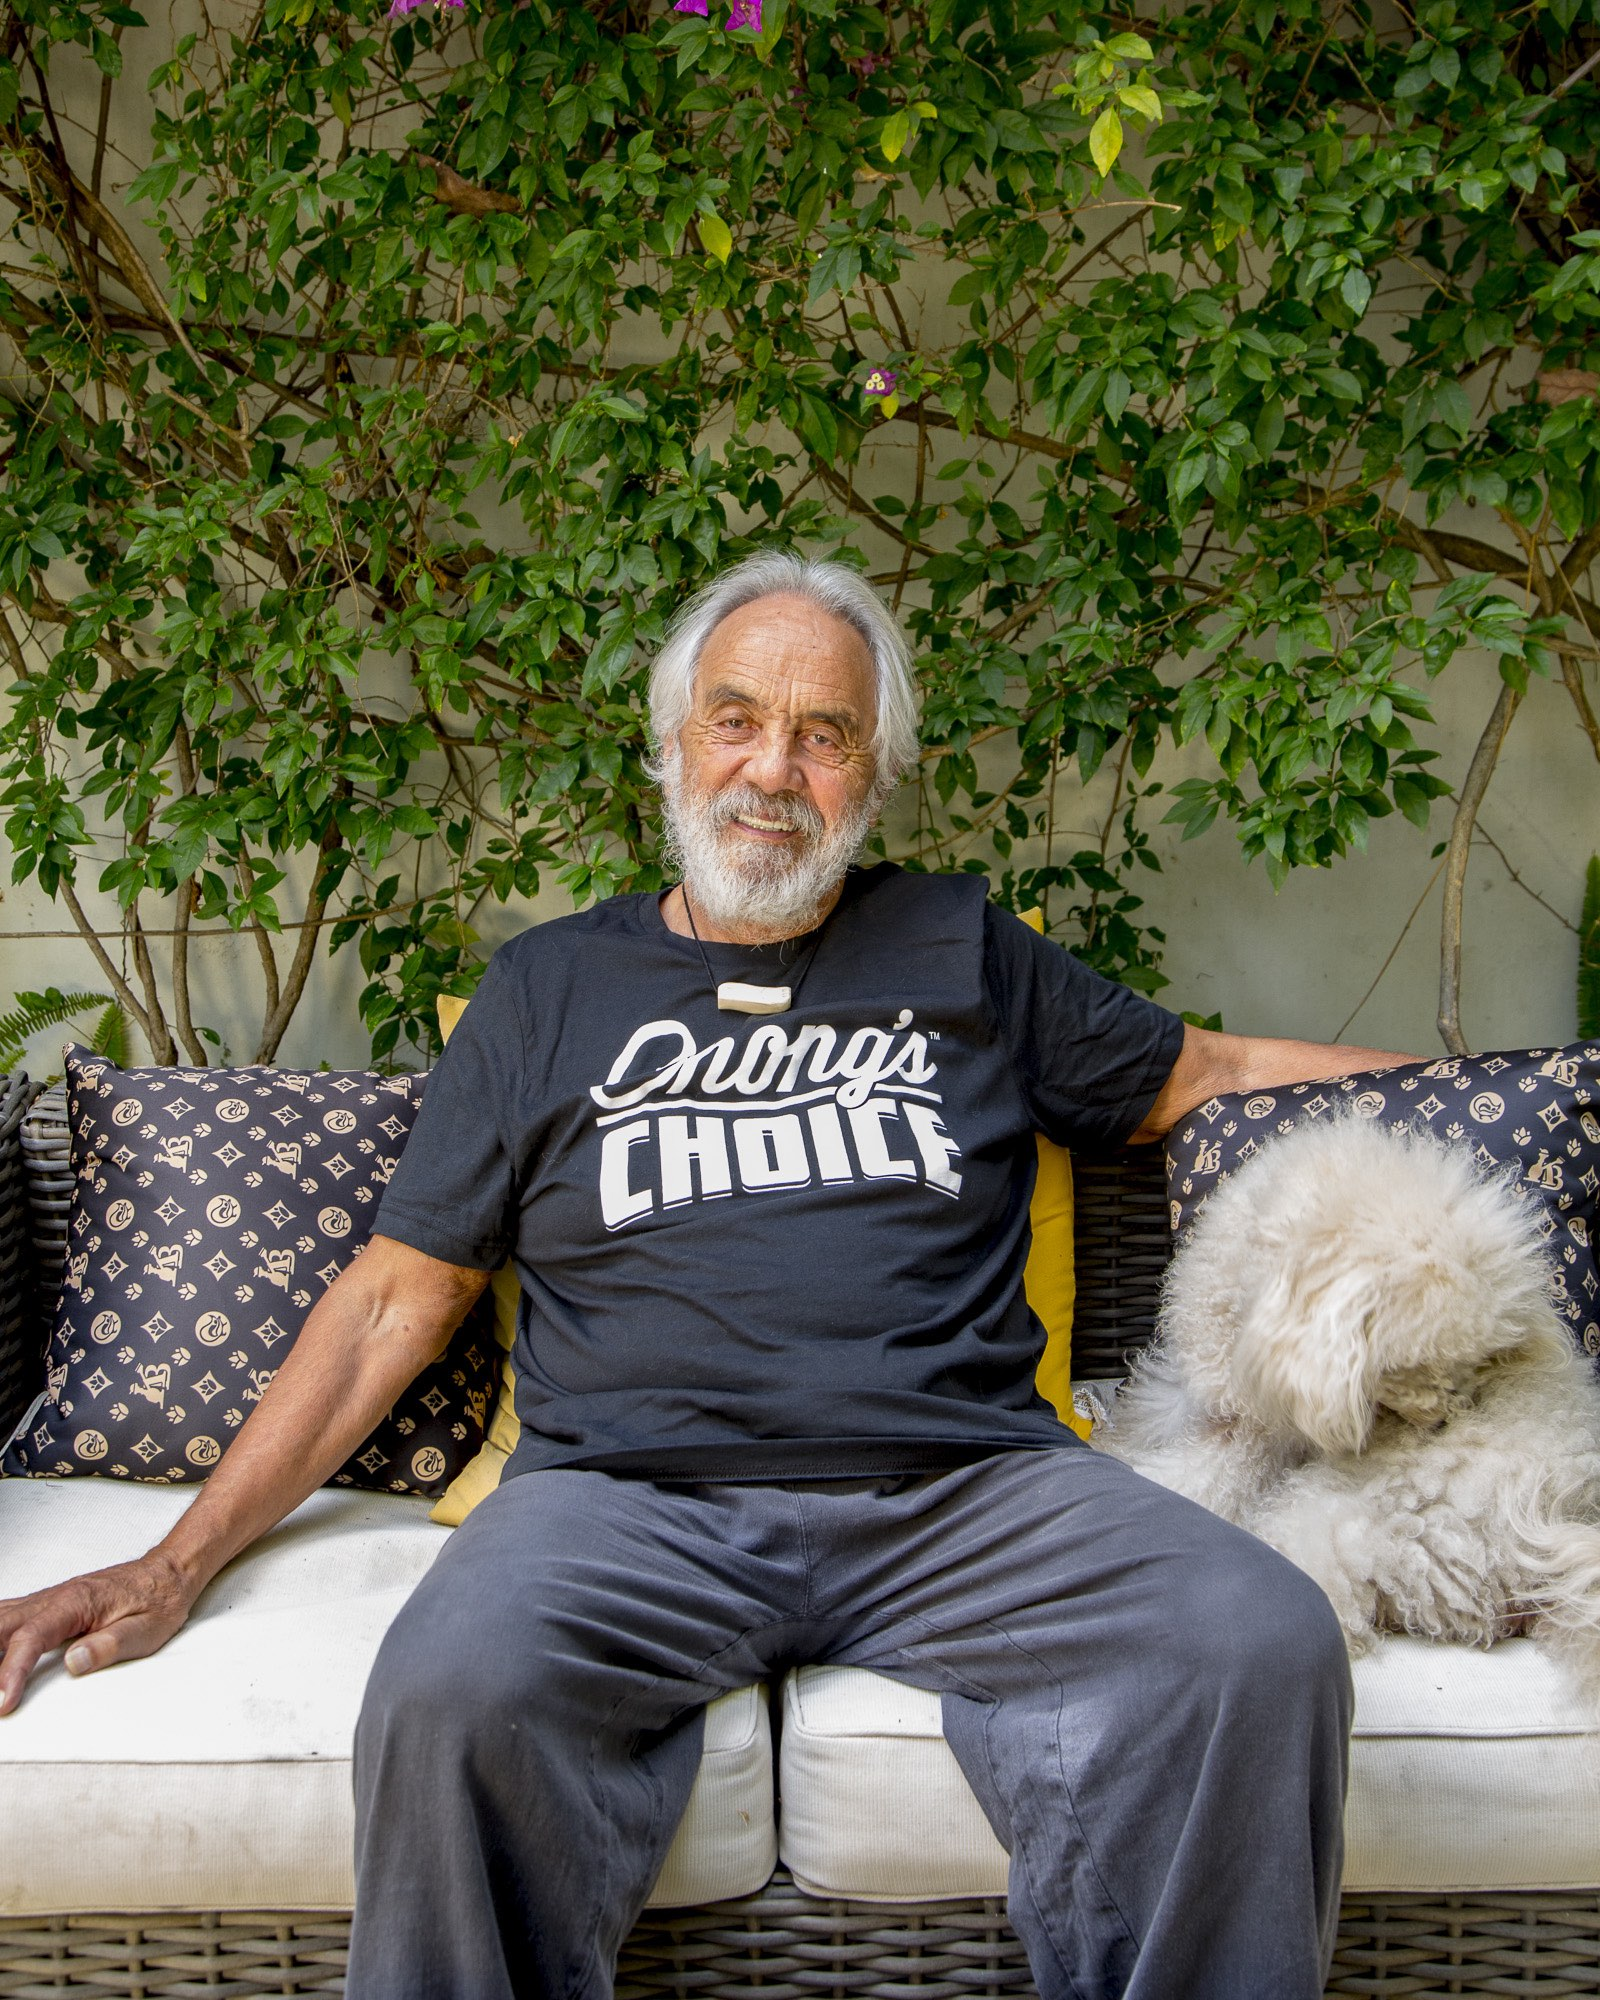 Tommy Chong at his home, July 2018. (Image courtesy of Maria Penaloza)